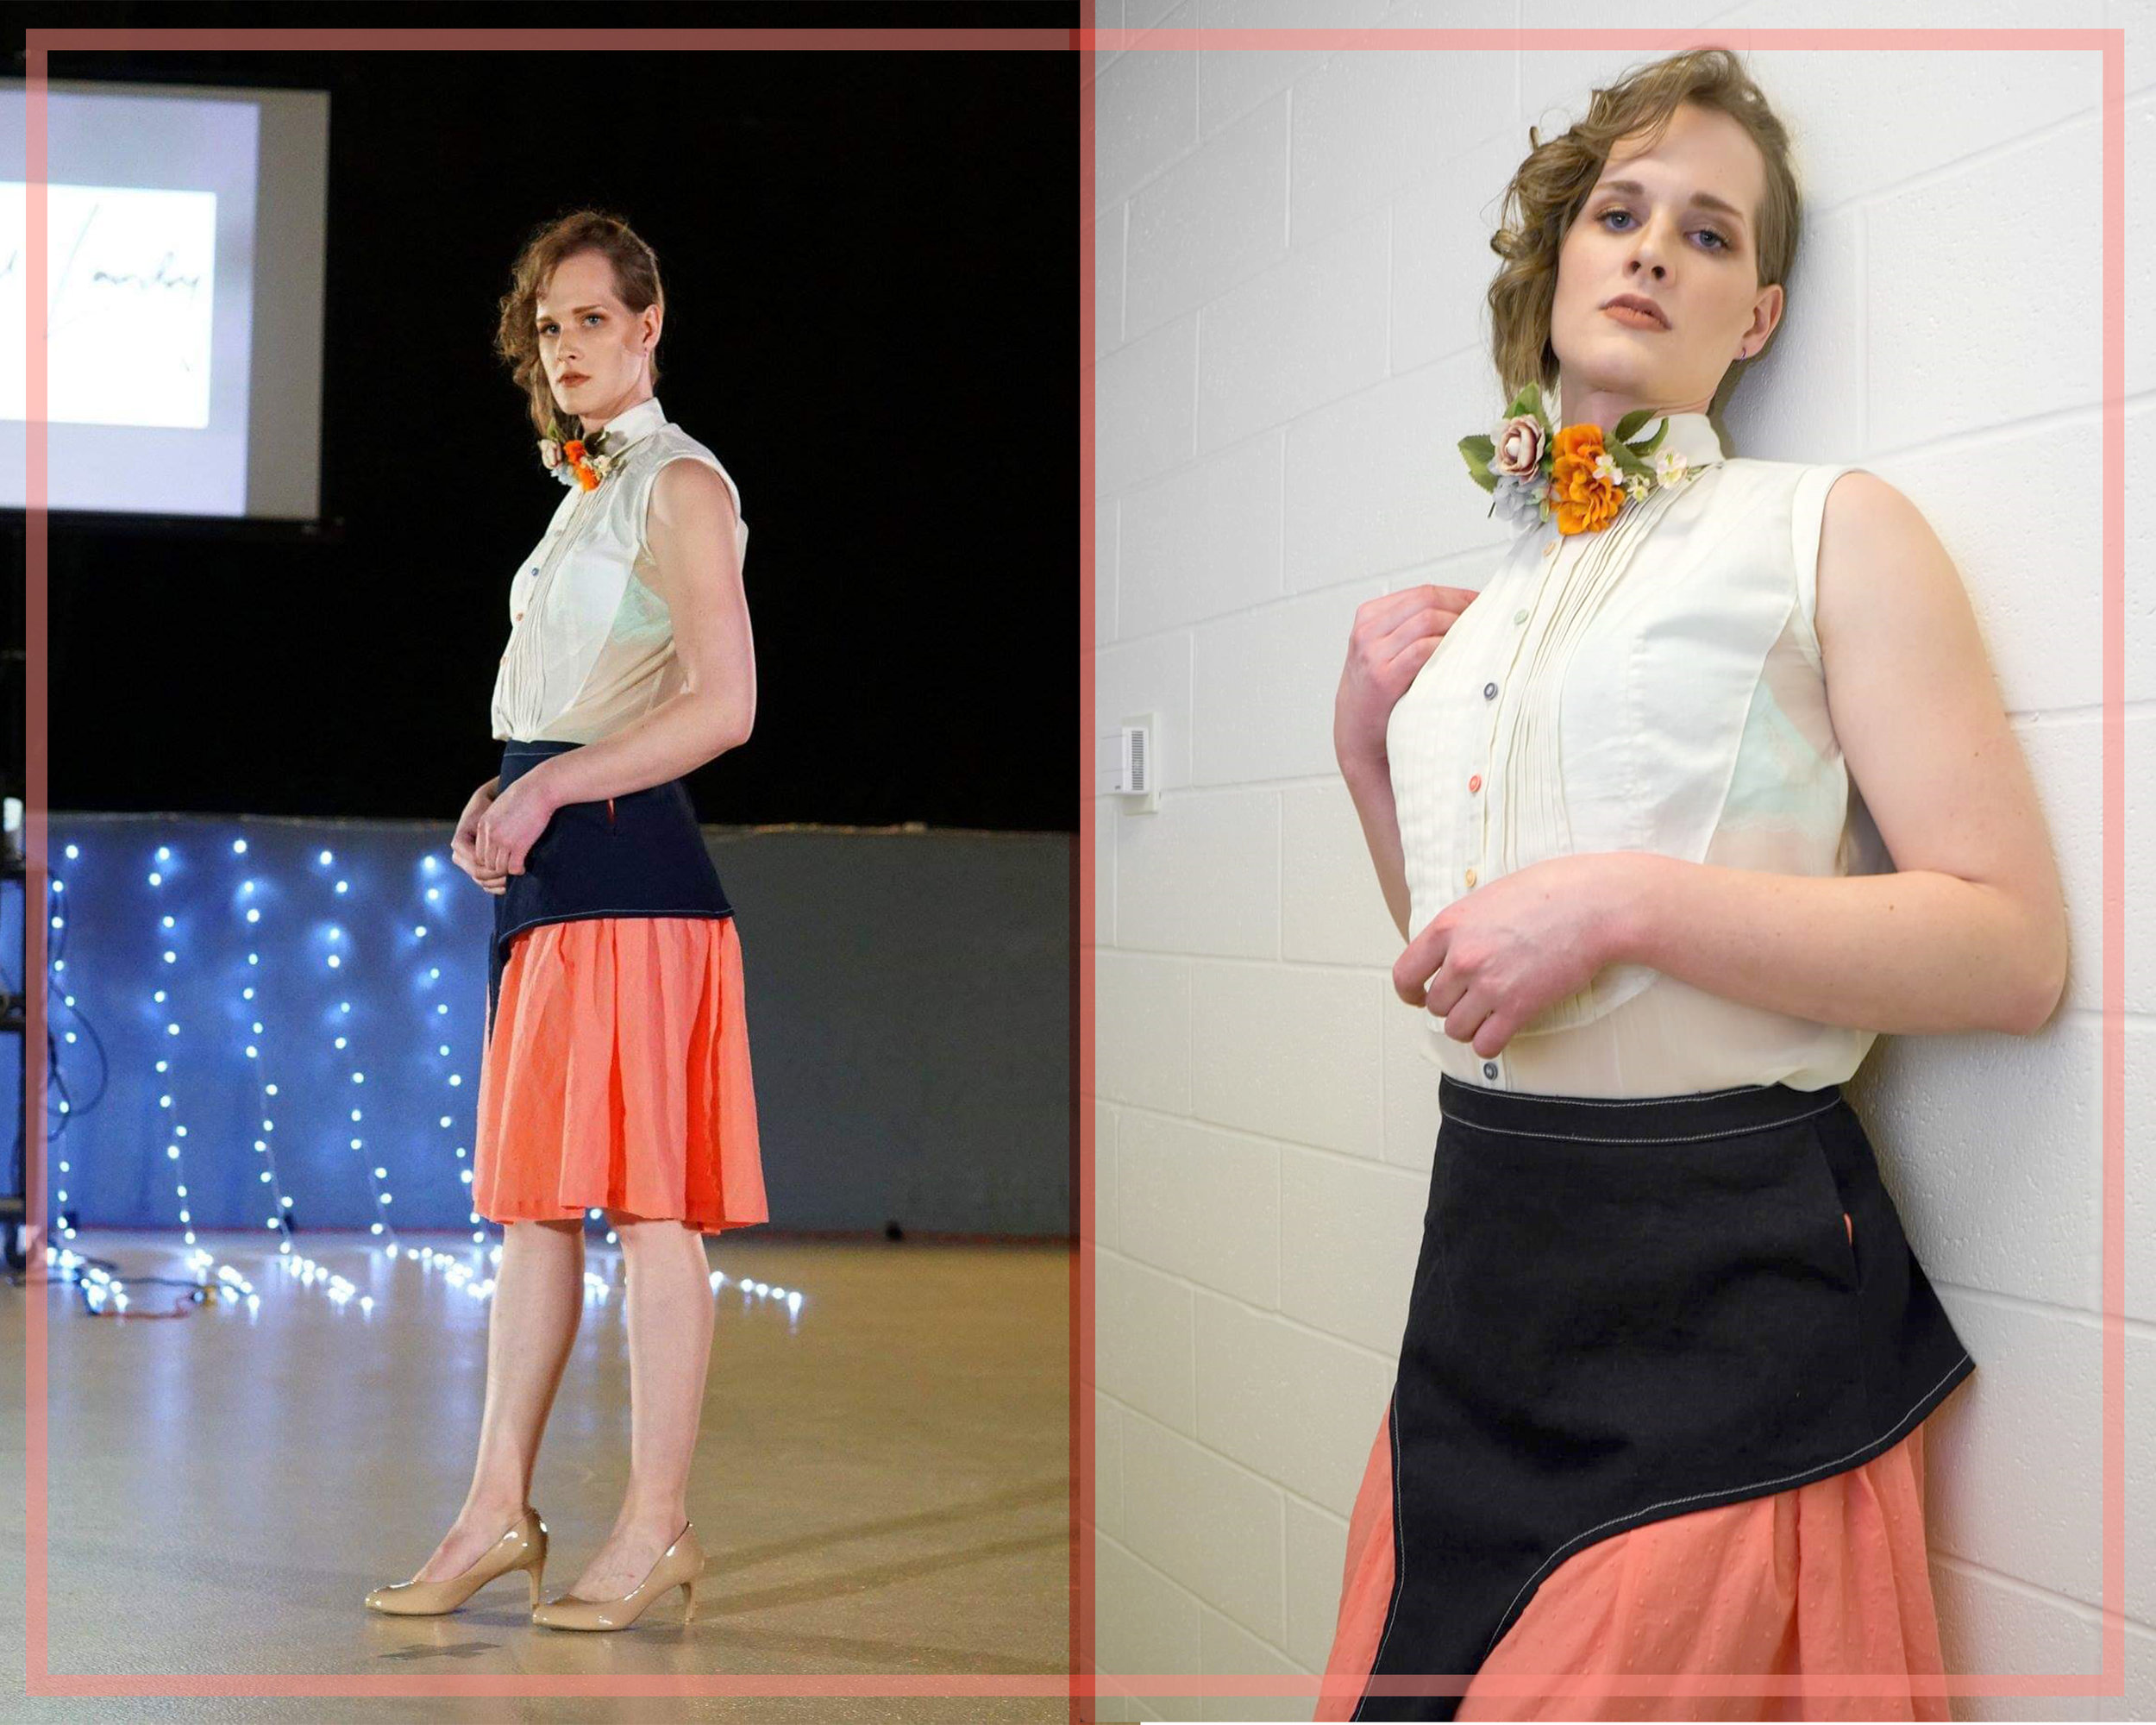 Caption: Picture 1: Alison Ashdown, a trans model with curly brown hair pulled to one shoulder, giving us a 3/4 view of the Amelia Ensemble.  Picture 2: Alison again, behind the scenes, leaning against a brick wall in the Amelia Ensemble. She's wearing a collarpiece with fabric flowers coming off of it, a la the Gucci collar from above.